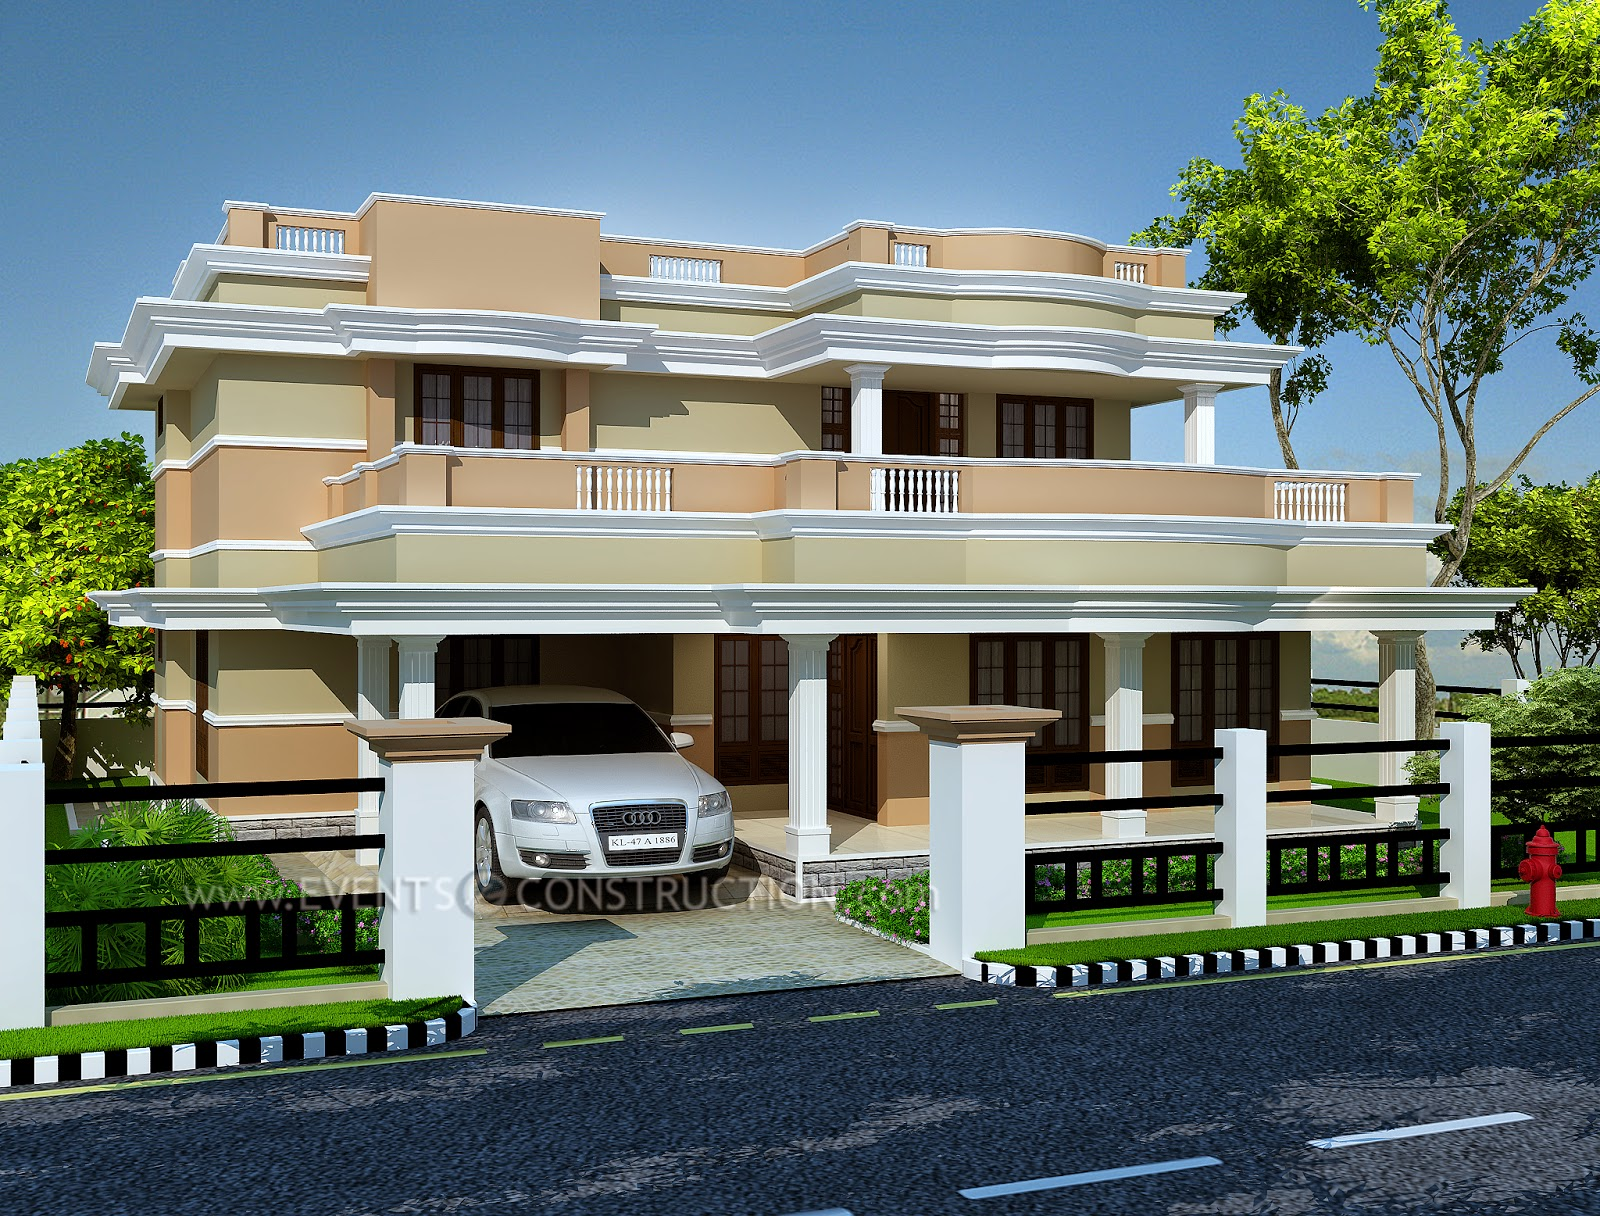 2350 sq feet home model in kerala